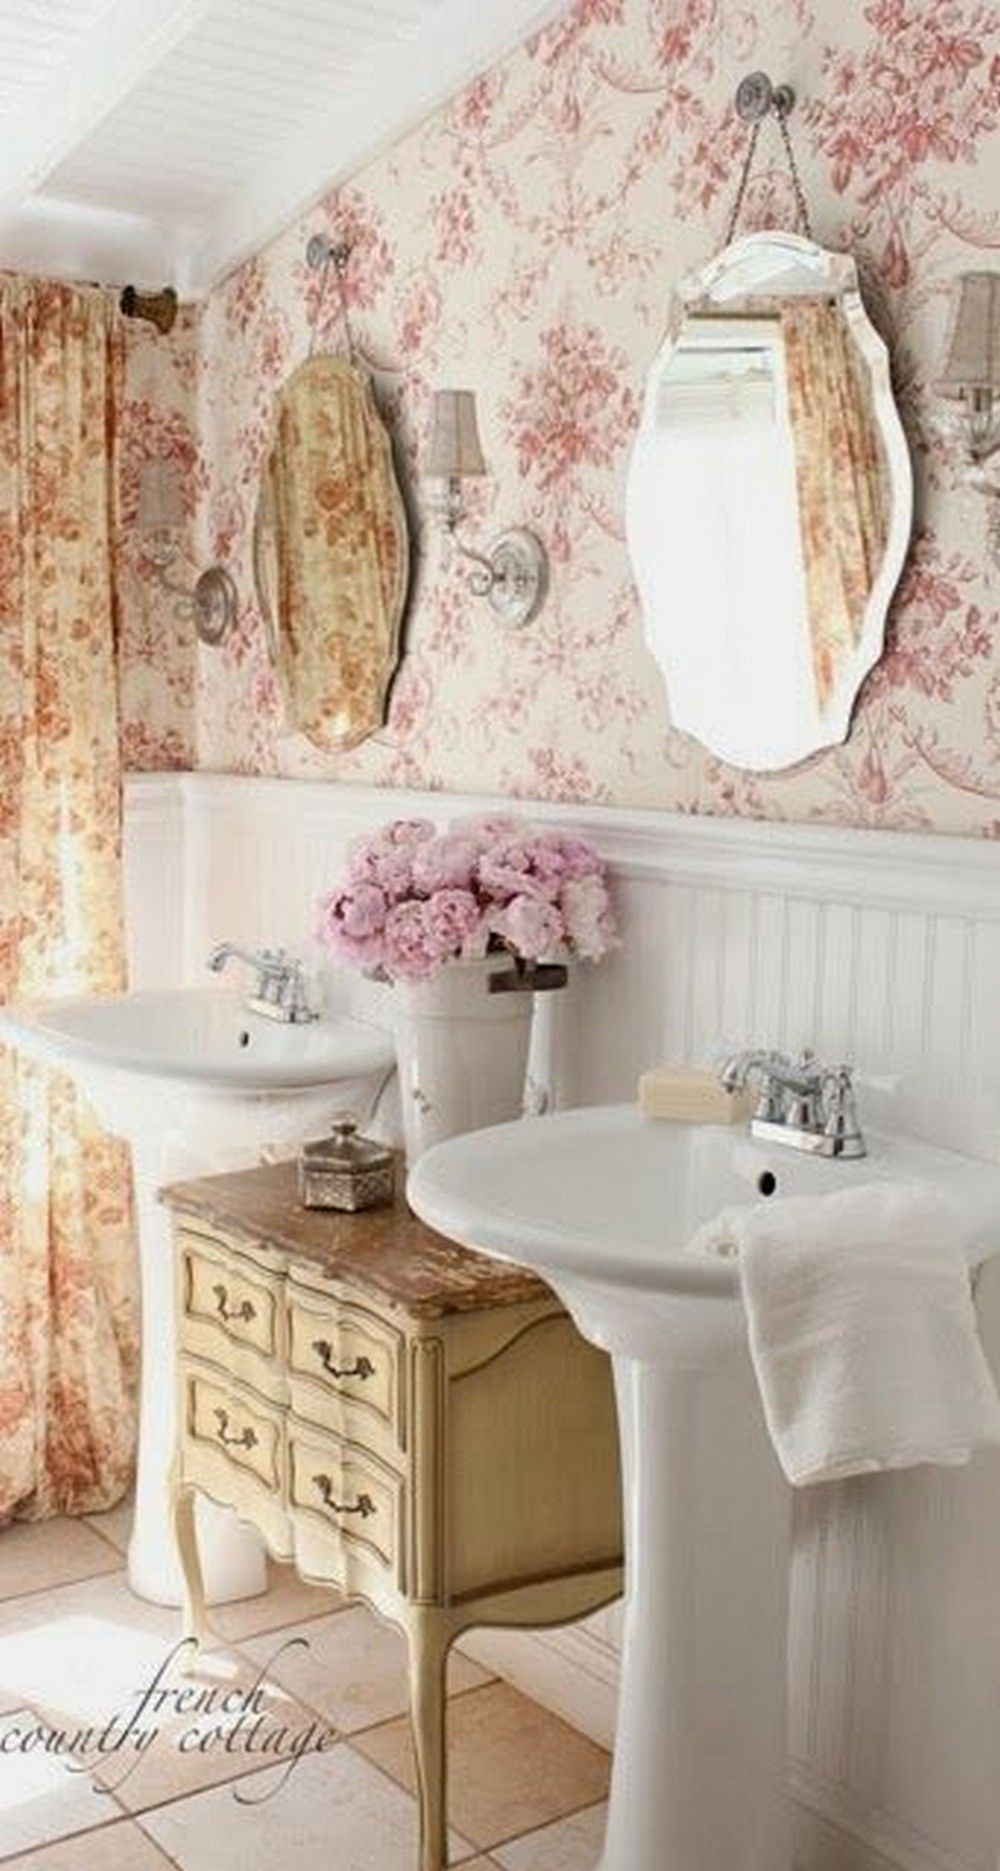 Pin By Angela Sundstrom On Bathroom Ideas French Country